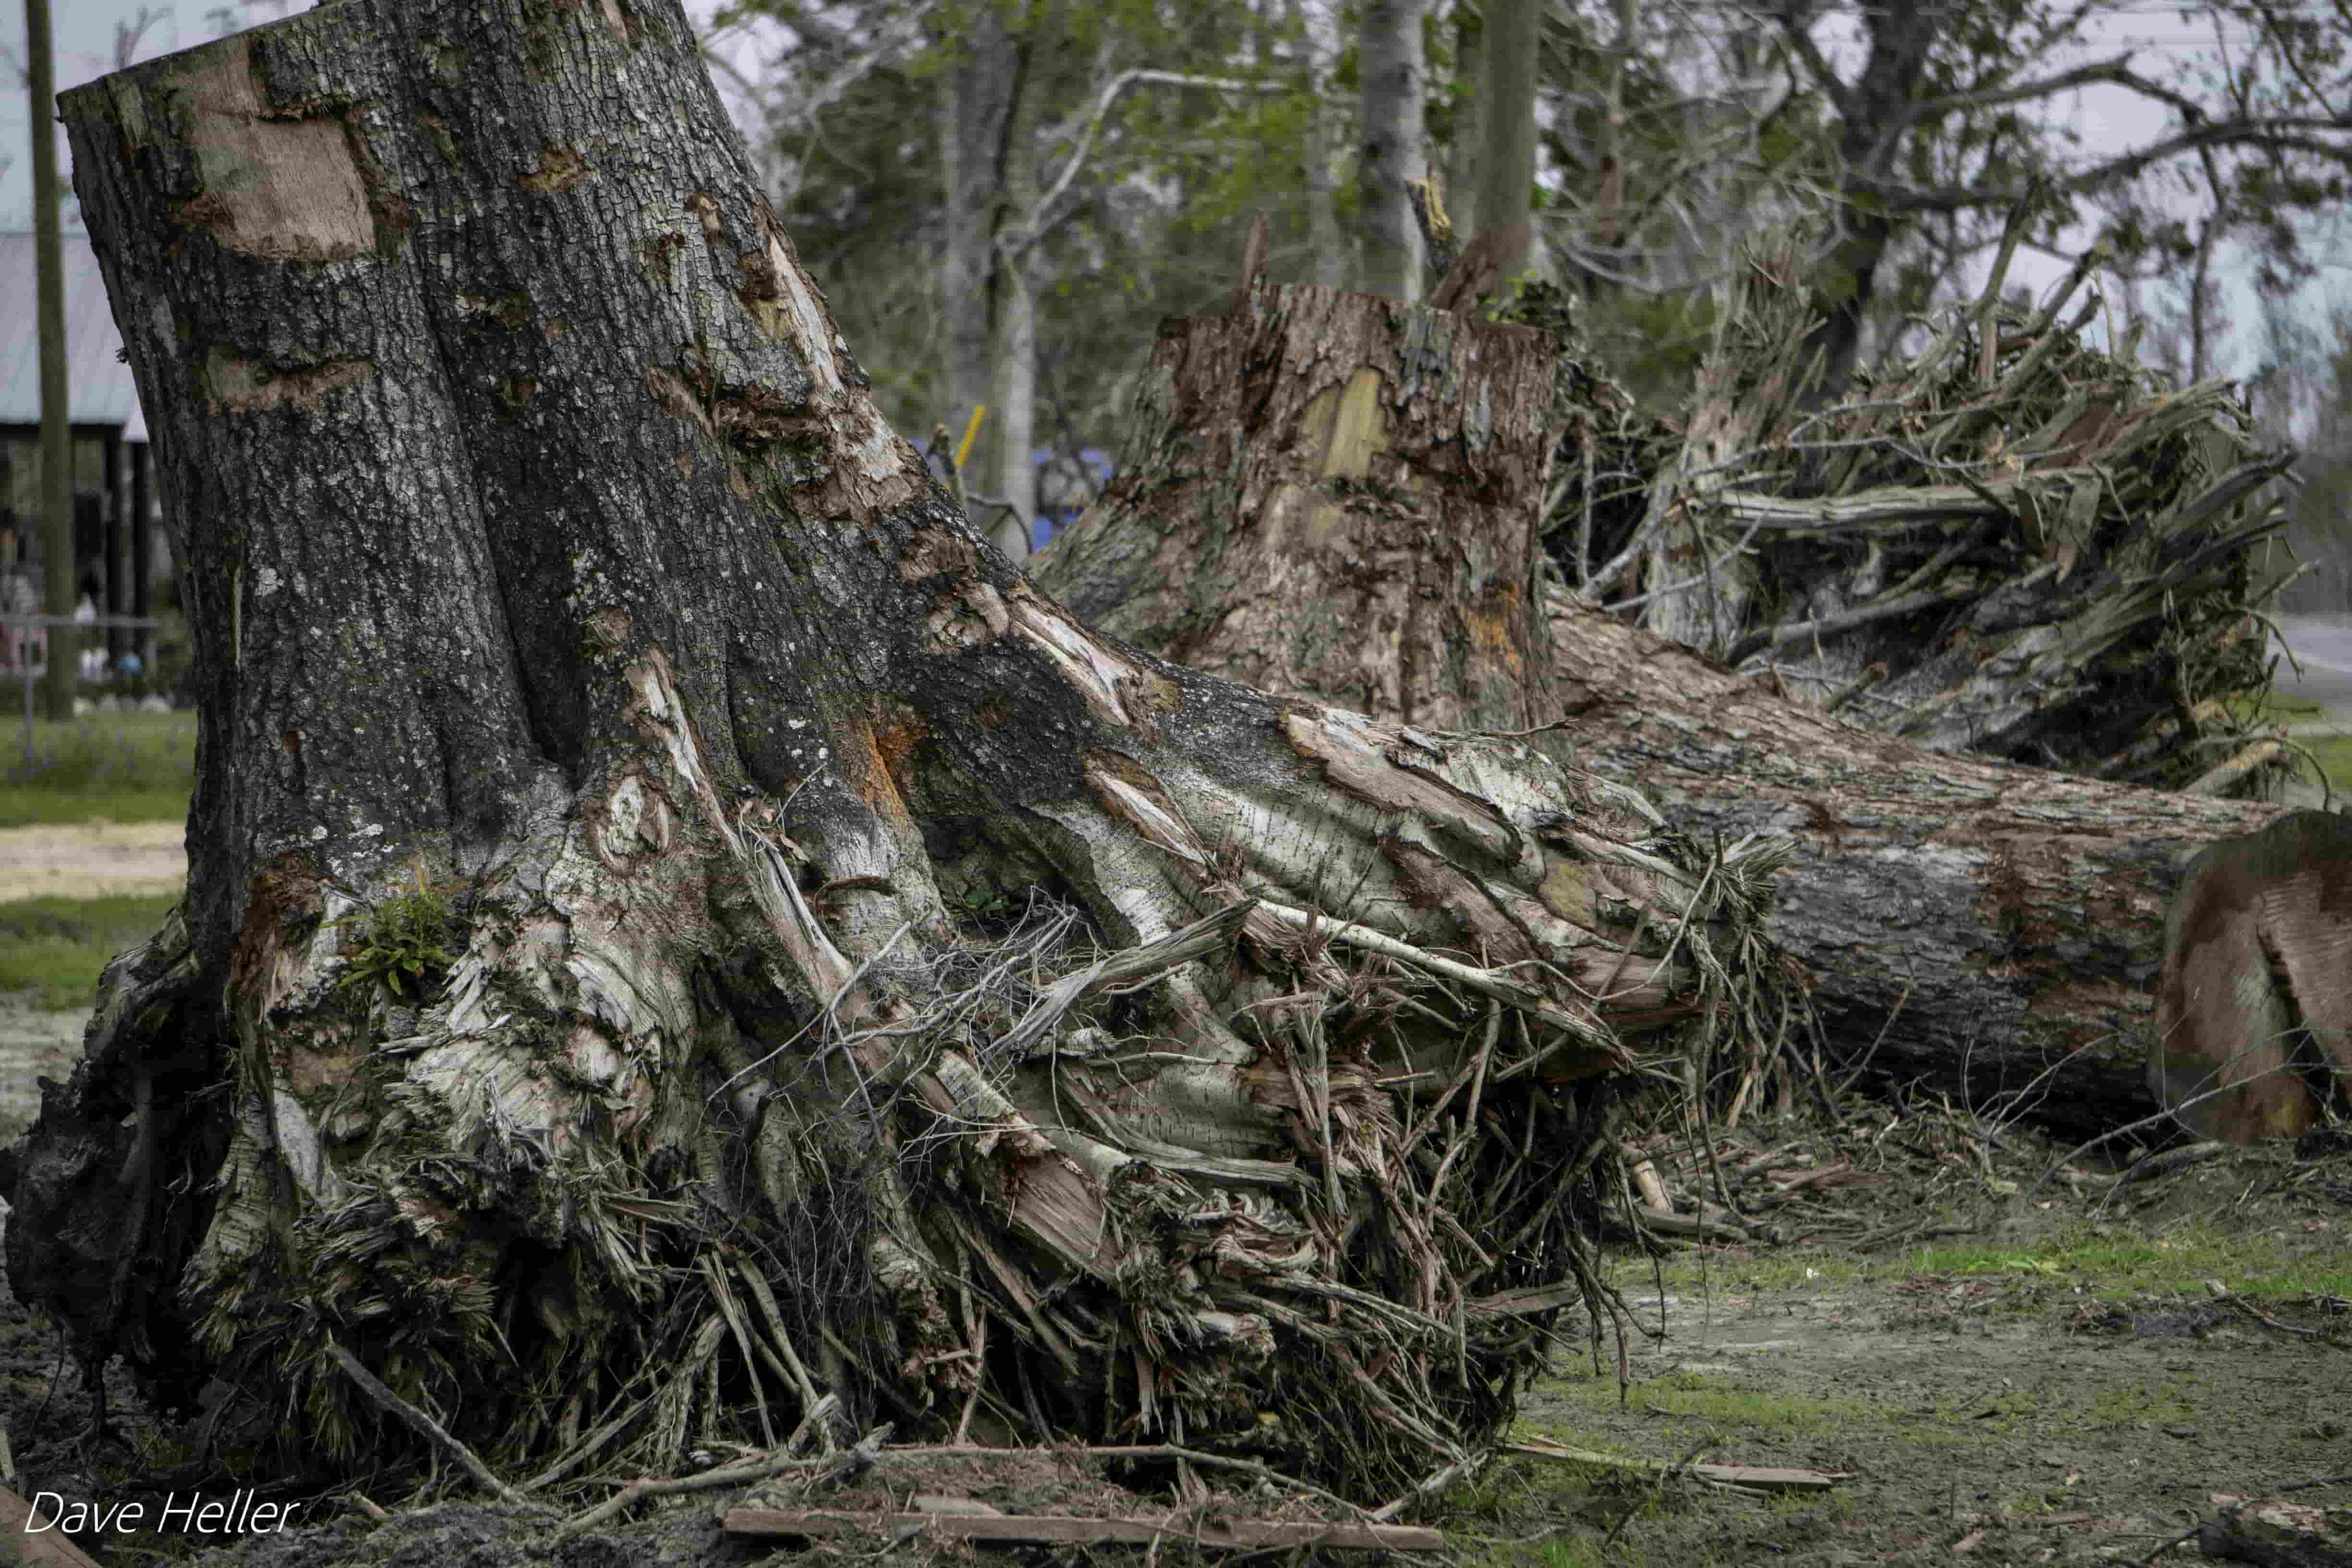 Officials warn that the thousands of uprooted trees and carpets of fallen limbs littered throughout North Florida could provide fuel for potentially catastrophic fires. Credit: Dave Heller